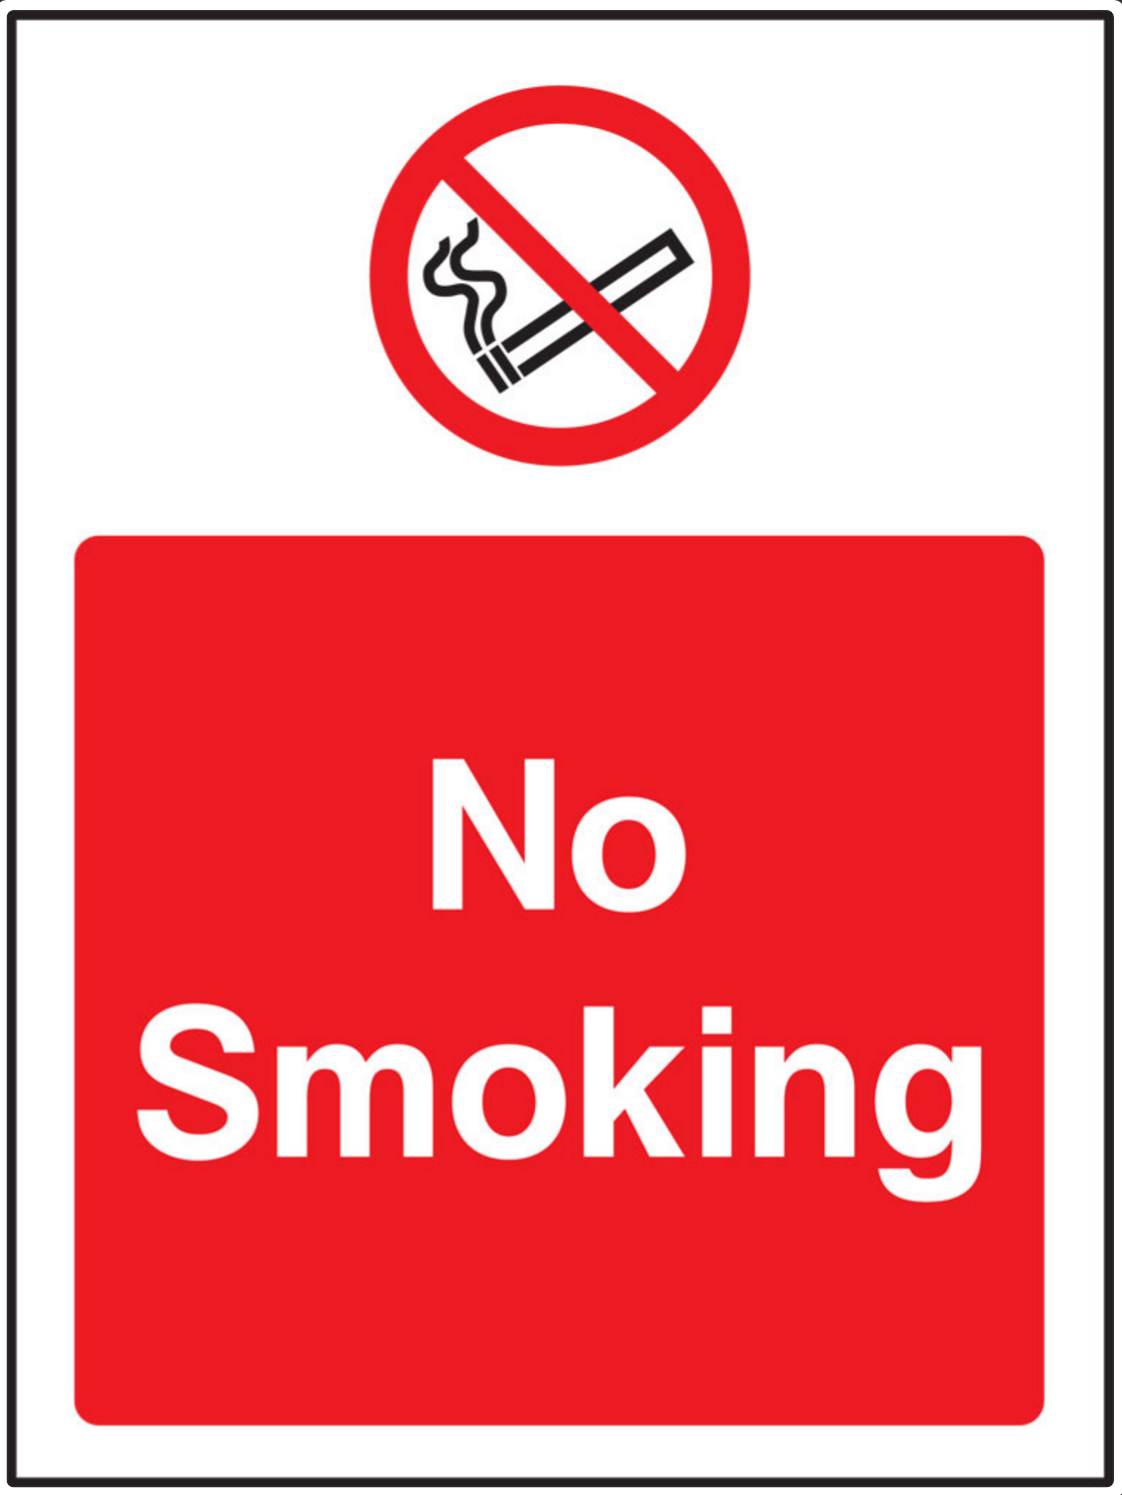 Health And Safety Signs In Cambridge, Cambridgeshire. Mammoth Logo. Wholesale Posters. Sleeping Beauty Banners. Rear Fender Decals. Tape Signs. Agv Helmet Stickers. Cross Stitch Lettering. Road Wall Murals